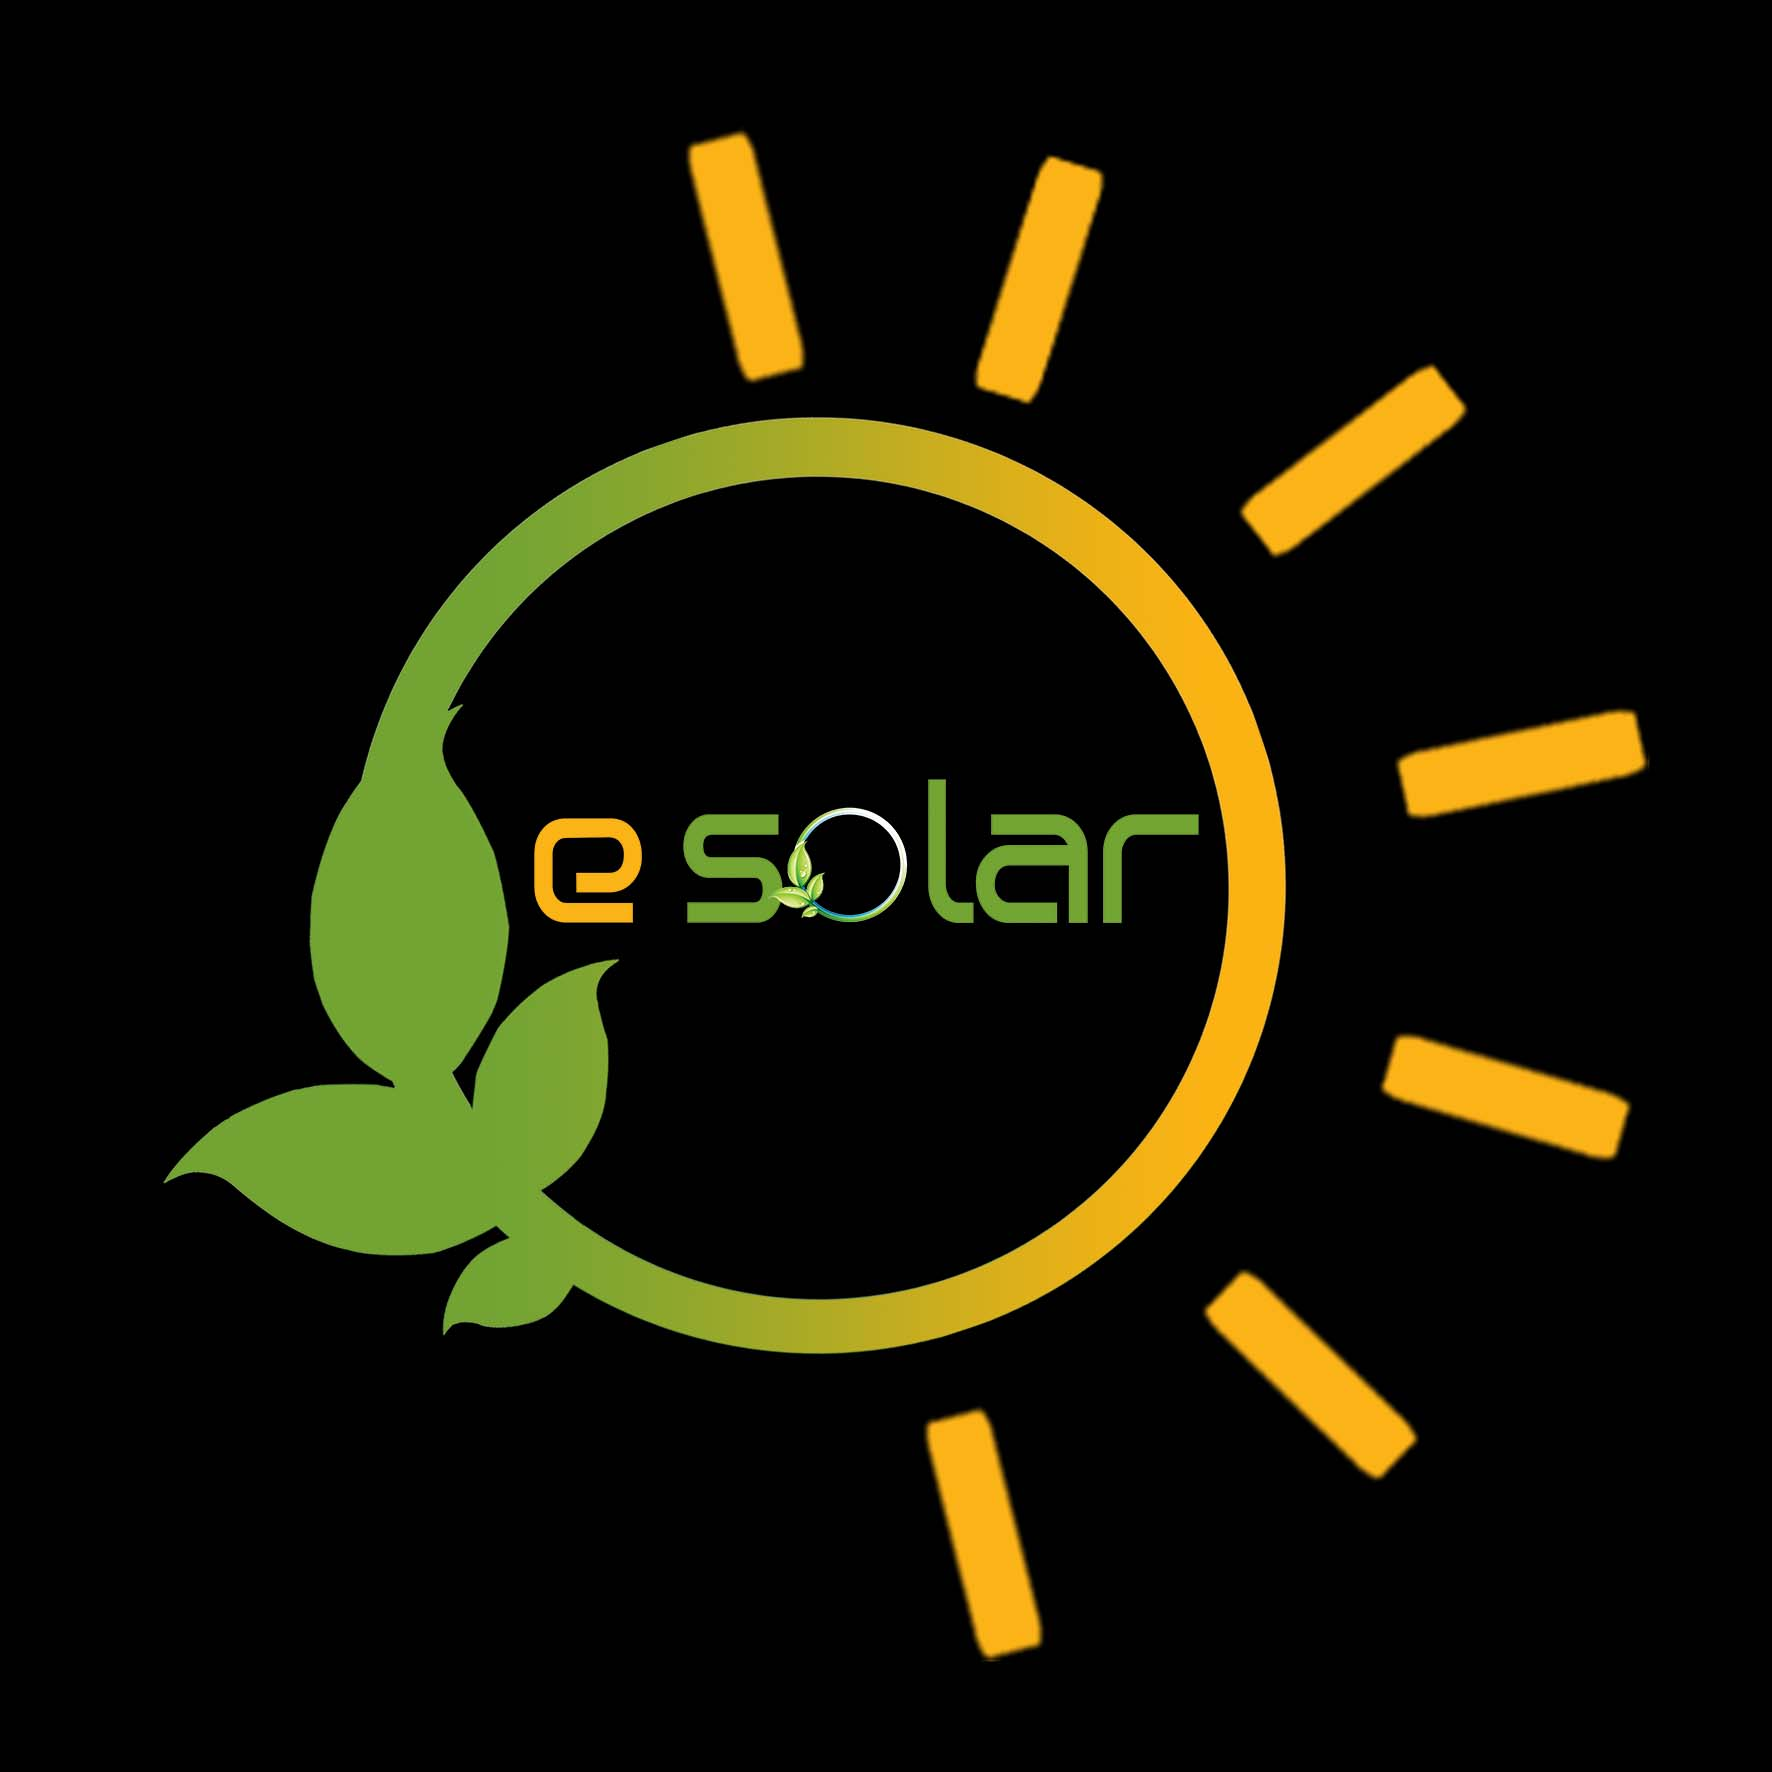 Esolar for Renewable Energy